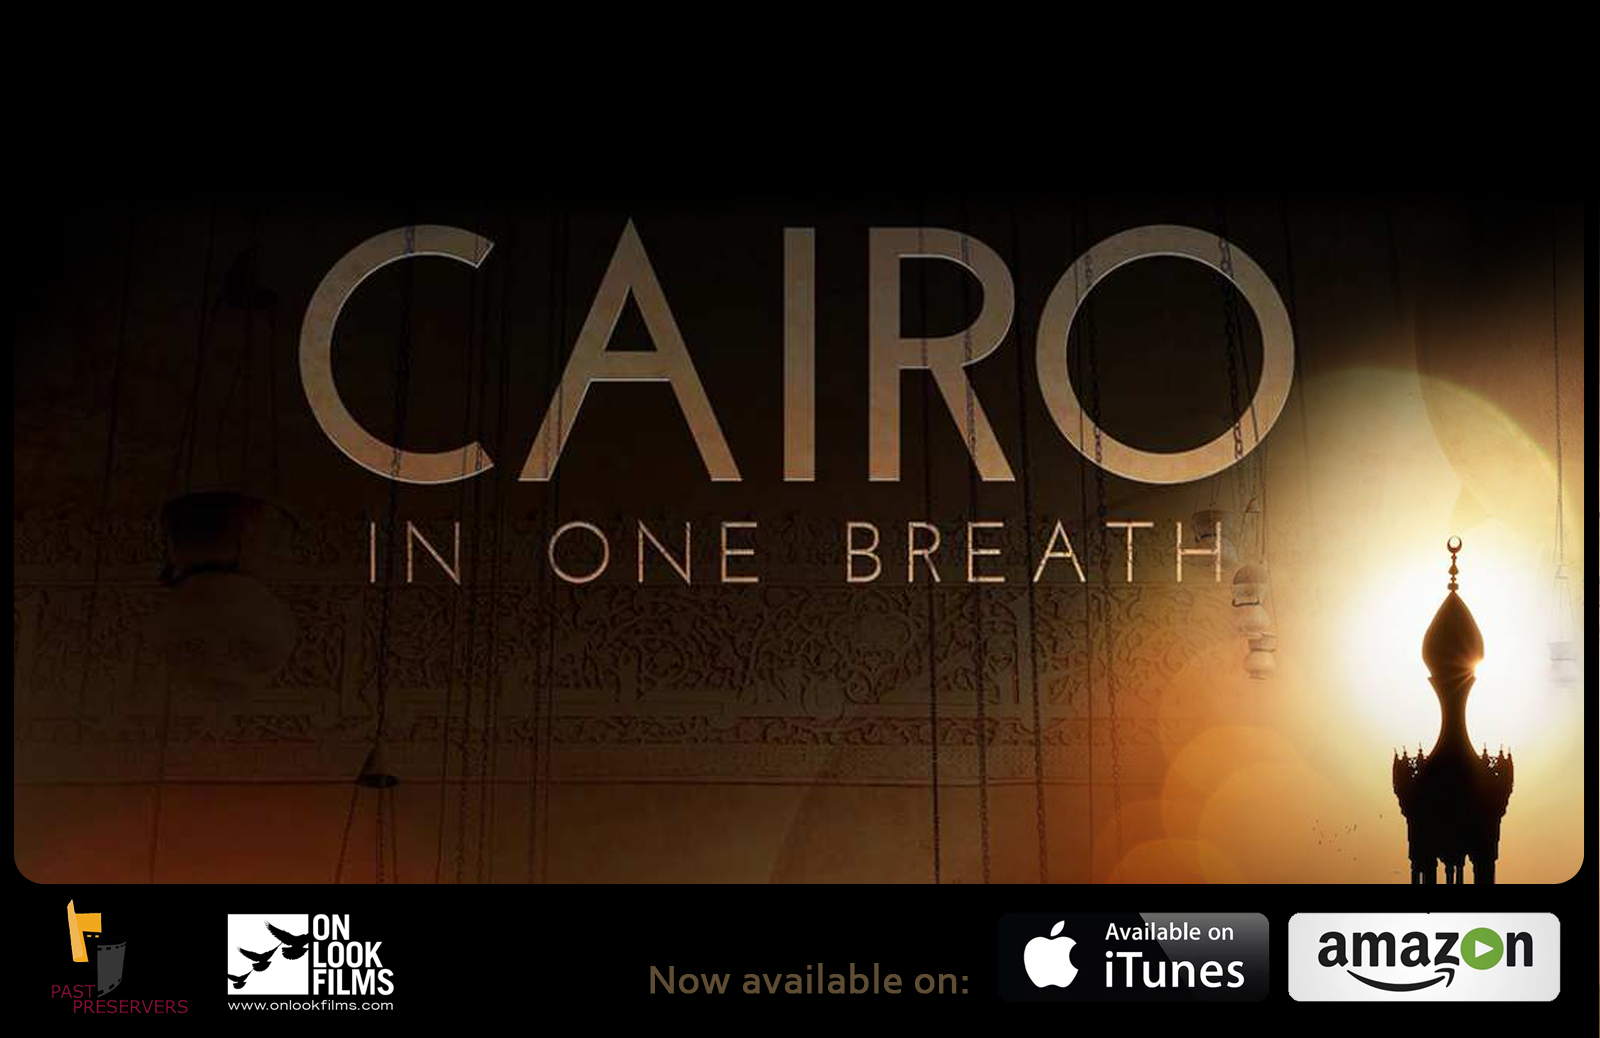 Cairo in One Breath is now available on iTunes and Amazon